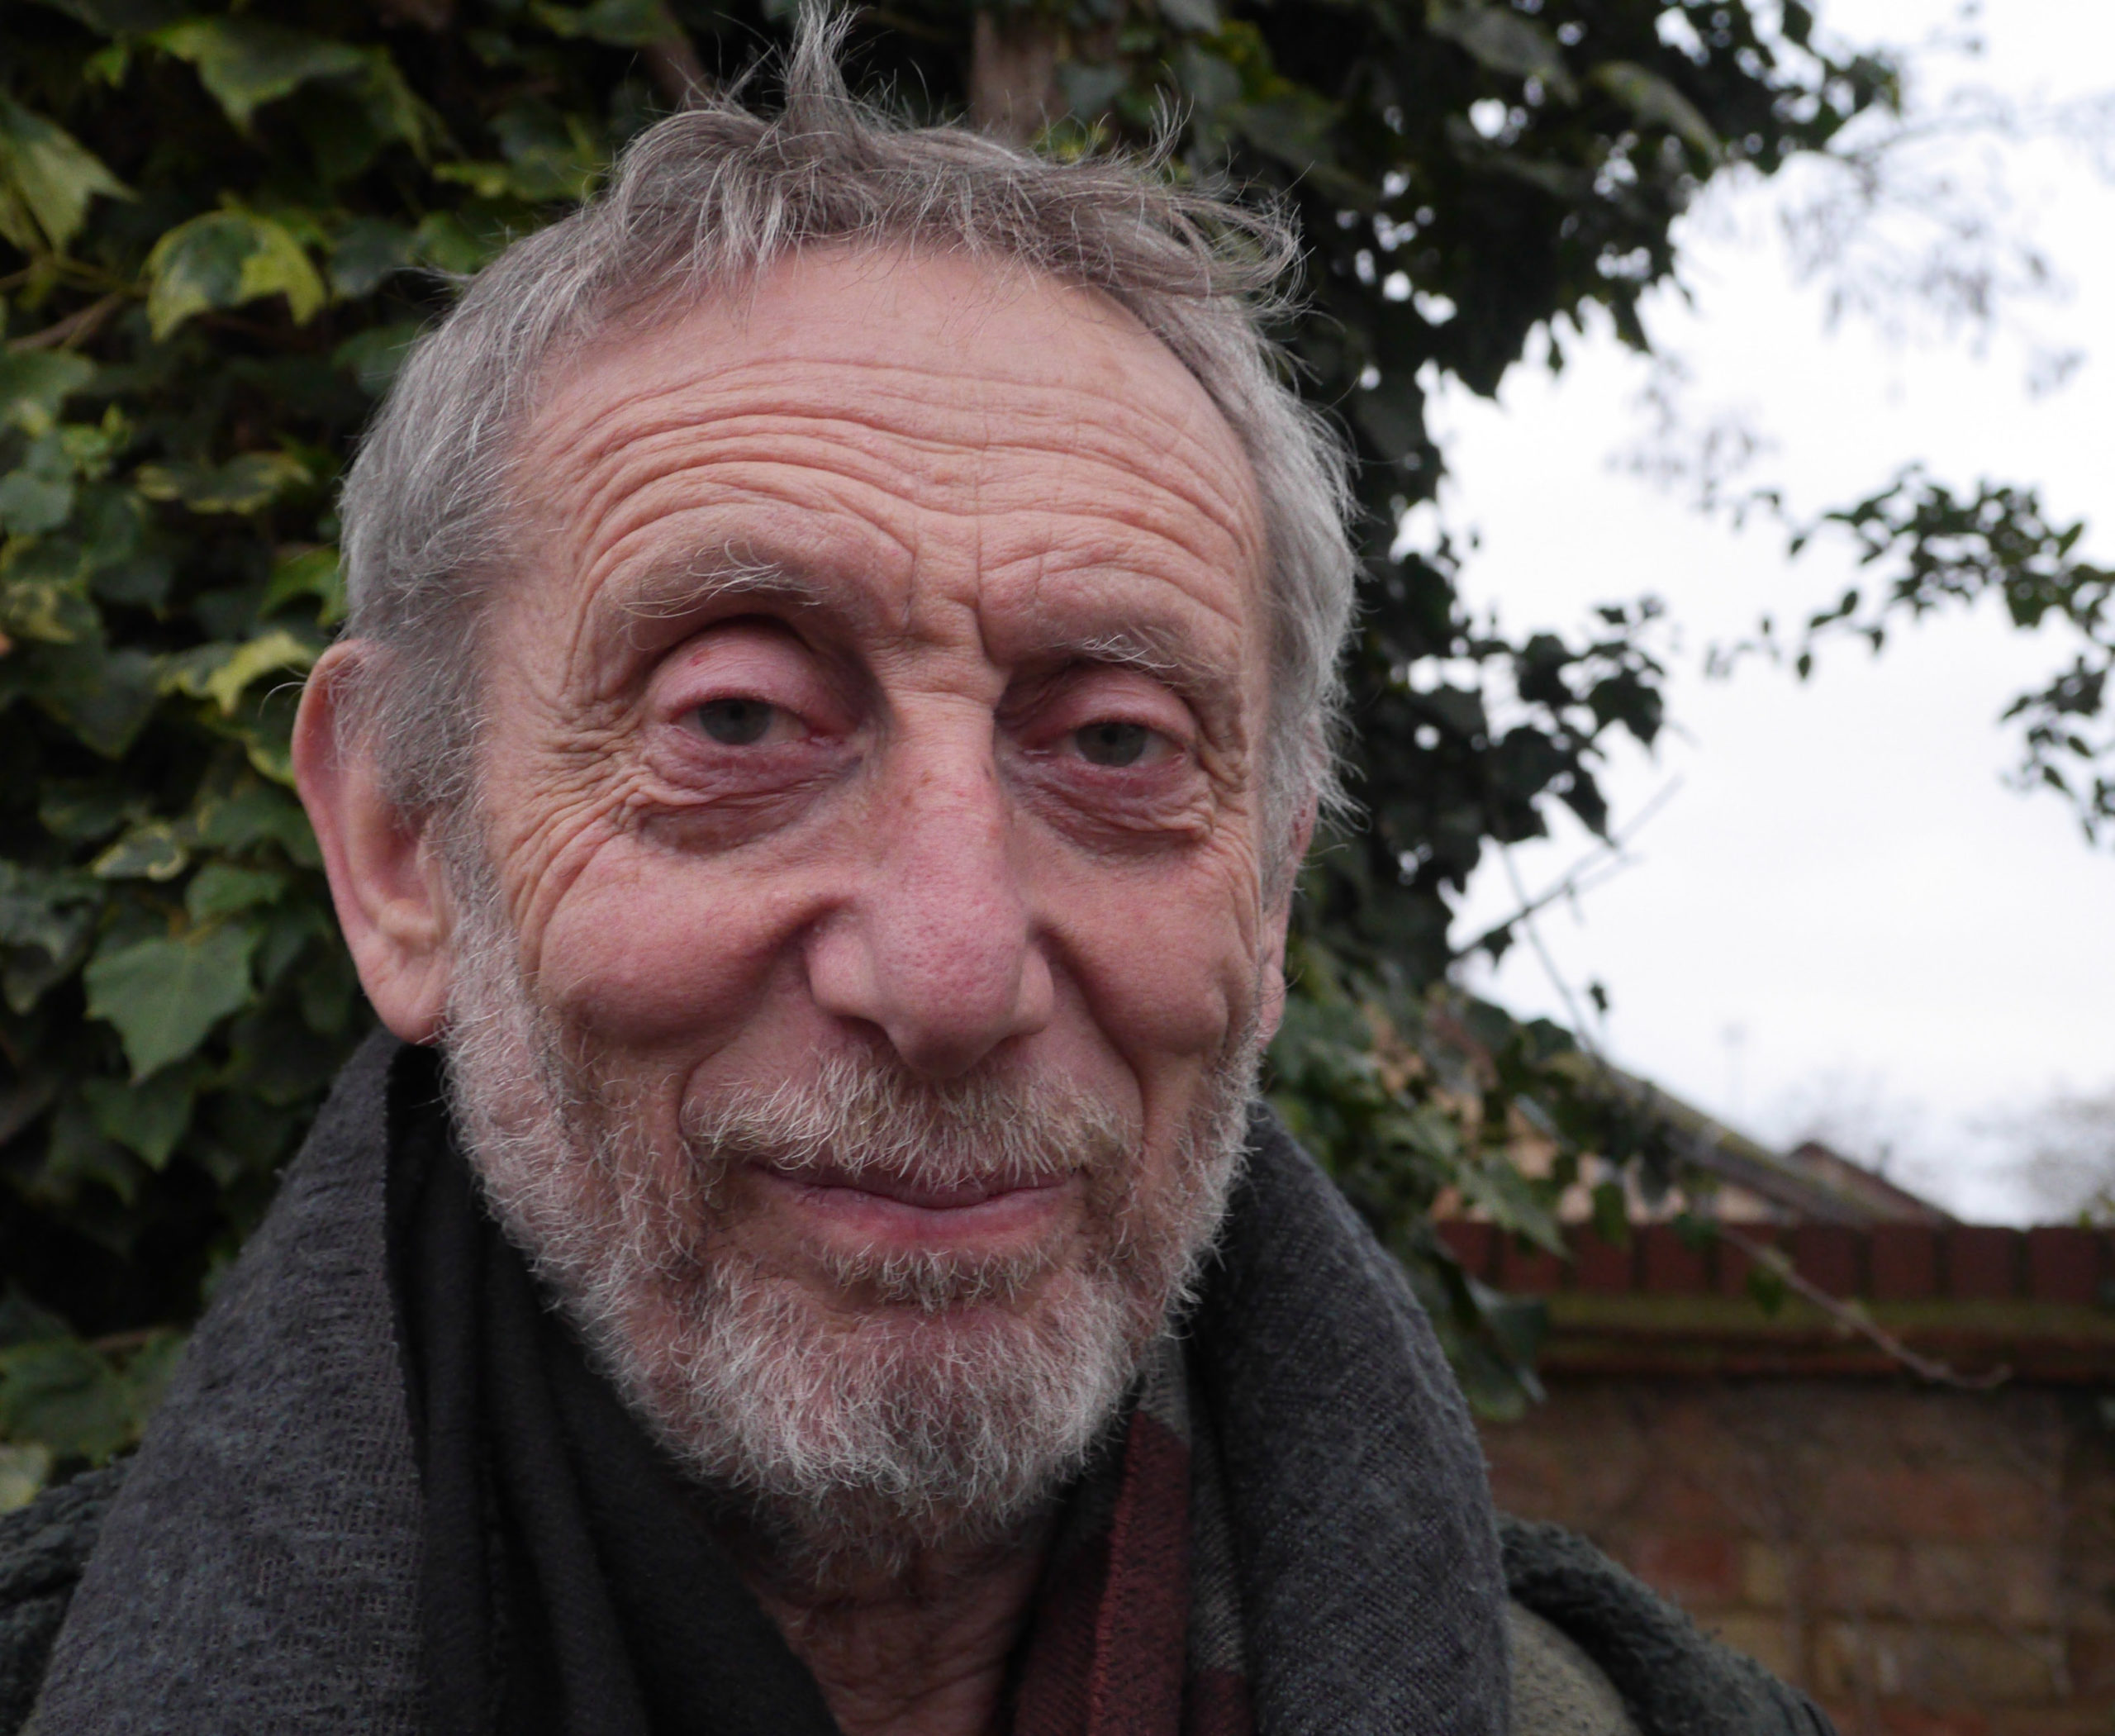 Michael Rosen in Discussion: A Dream of Covid and Recovery